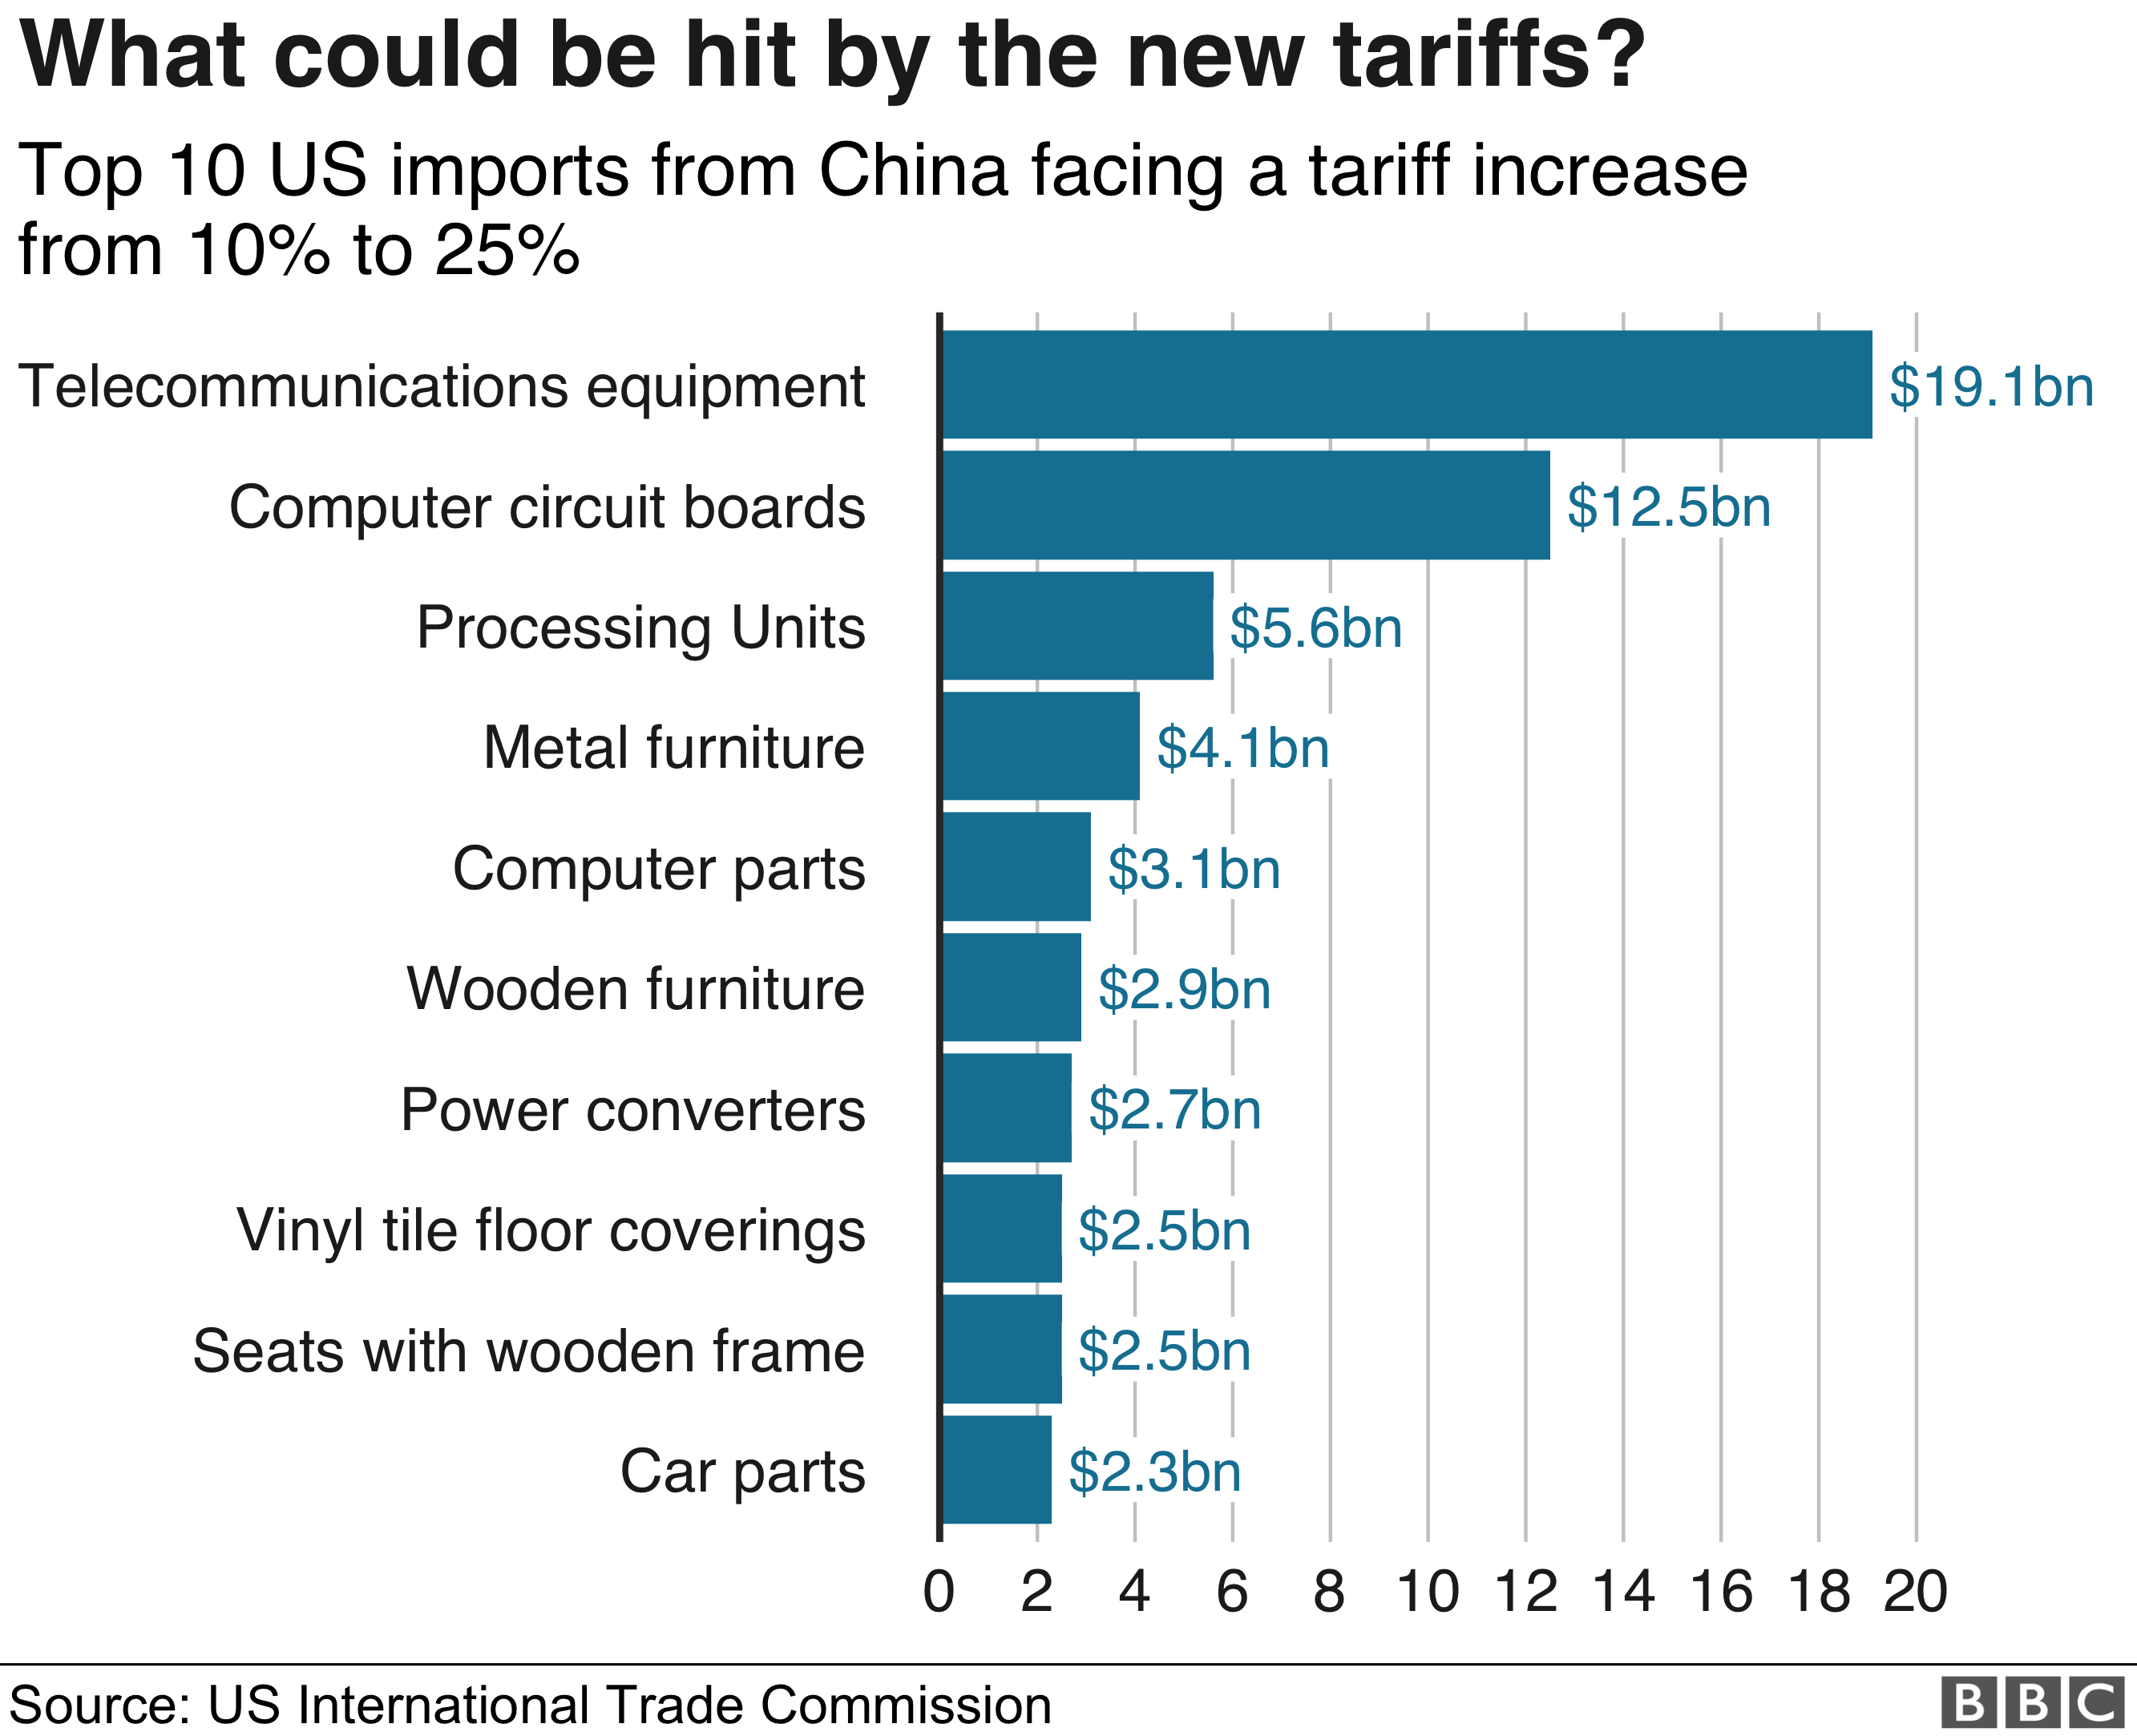 products with possible new tariffs